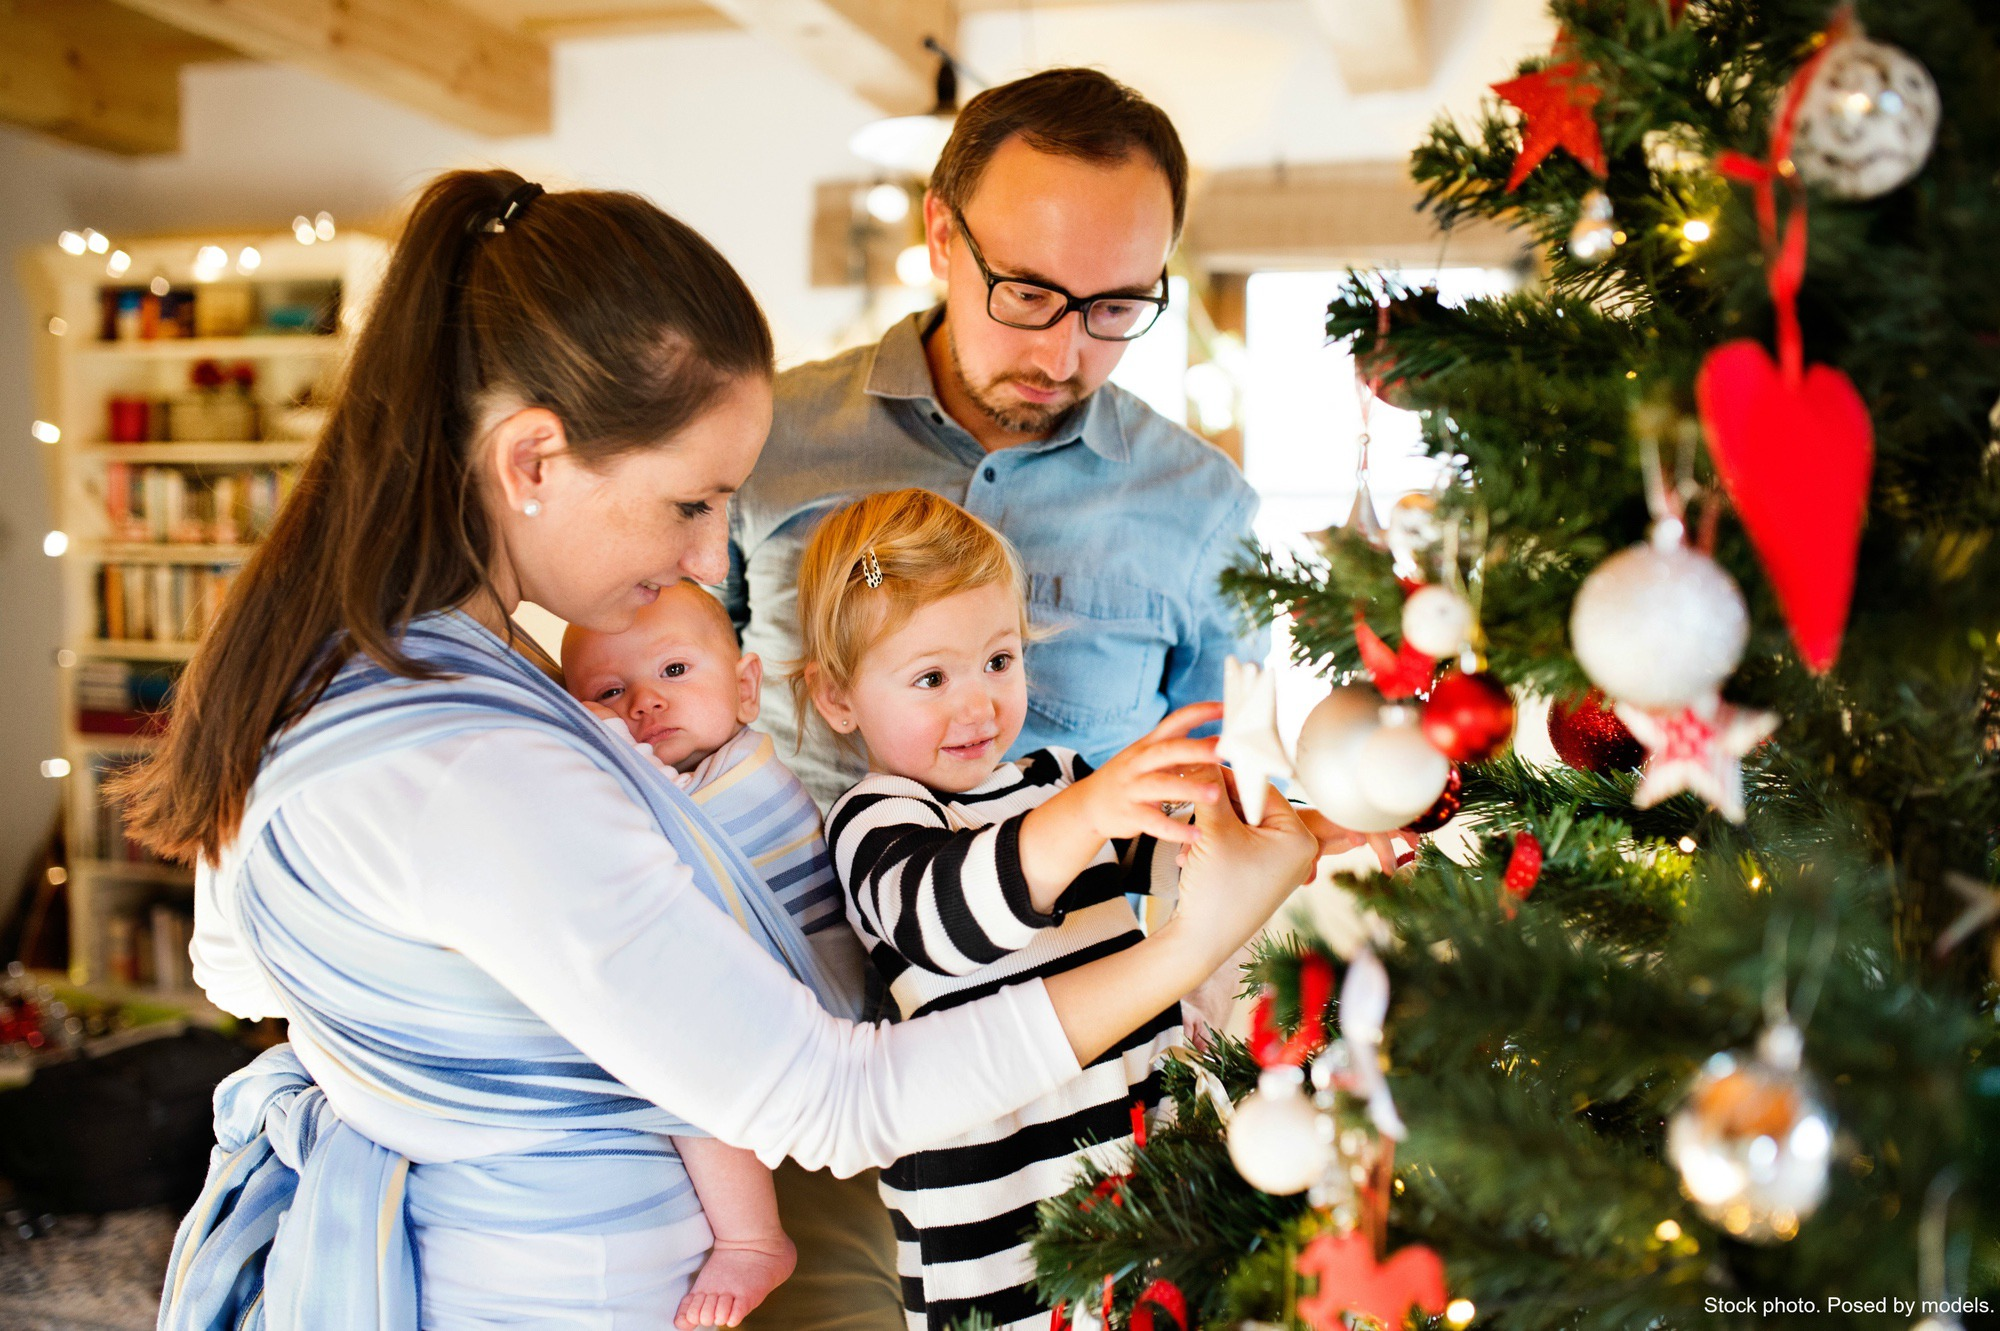 Young family decorating tree. Stock photo. Posed by models